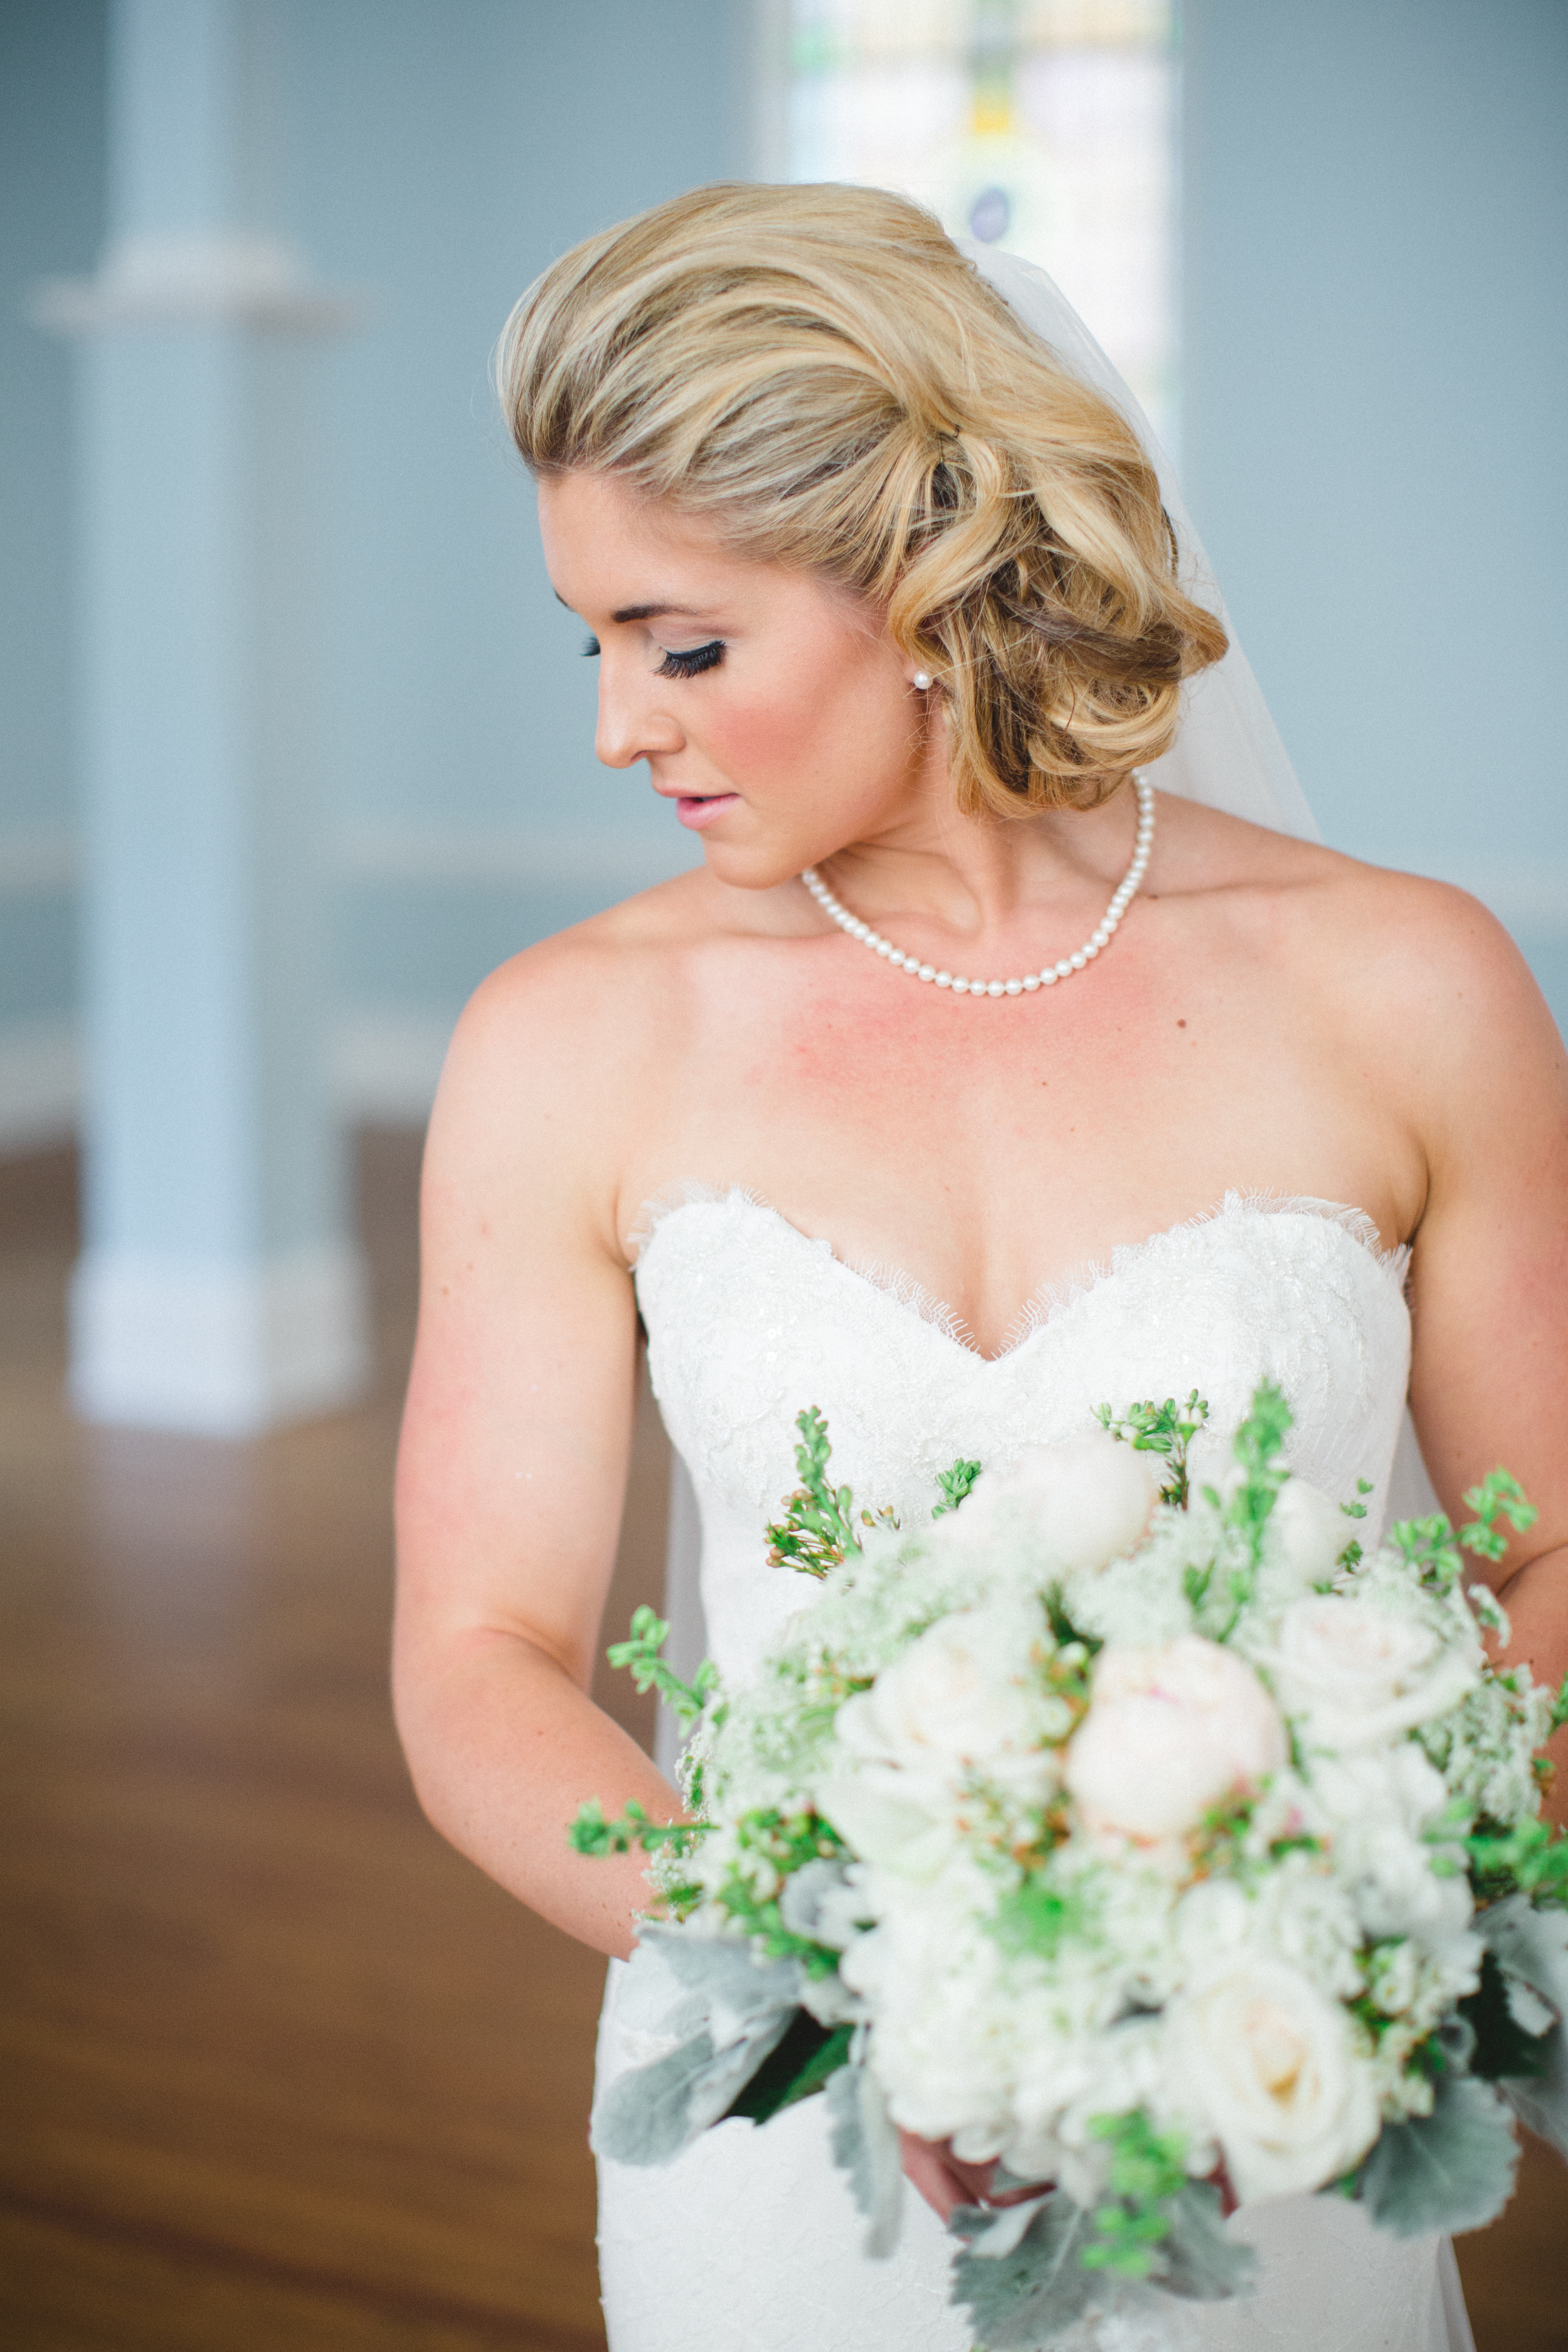 Hillary-and-Brian-izzy-hudgins-photography-anais-anette-tristan-lace-mermaid-wedding-dress-ivory-and-beau-bridal-boutique-savannah-bridal-boutique-savannah-wedding-dresses-savannah-bridal-gowns-savannah-wedding-dresses-first-babtist-savannah-11.jpg